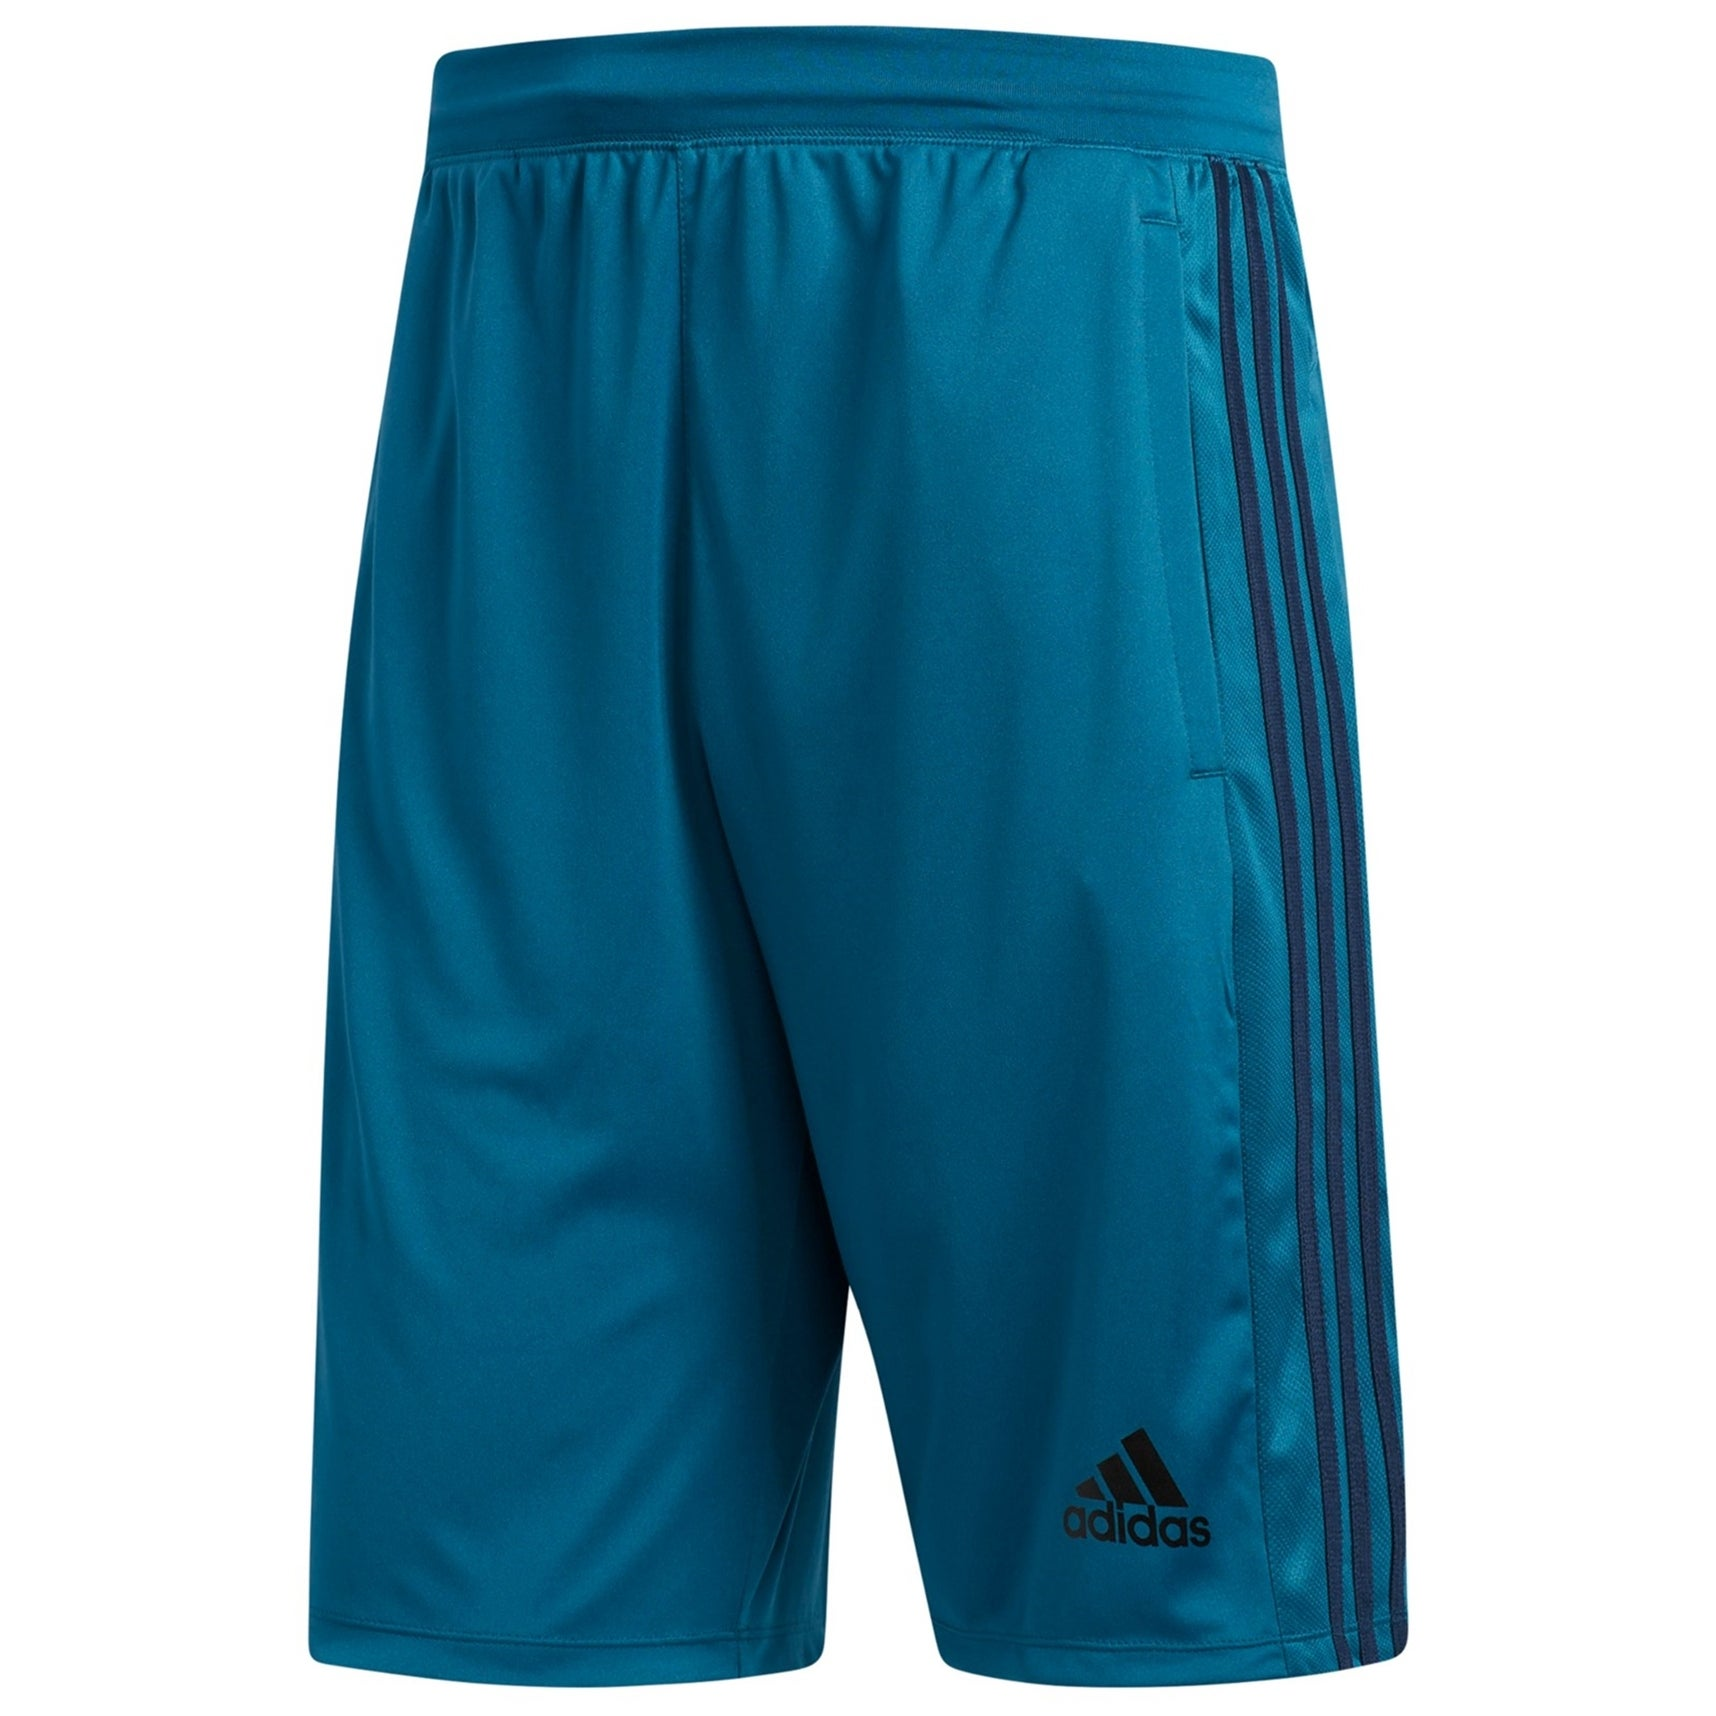 Shop Polyester Adidas Clothing & Shoes | Discover our Best